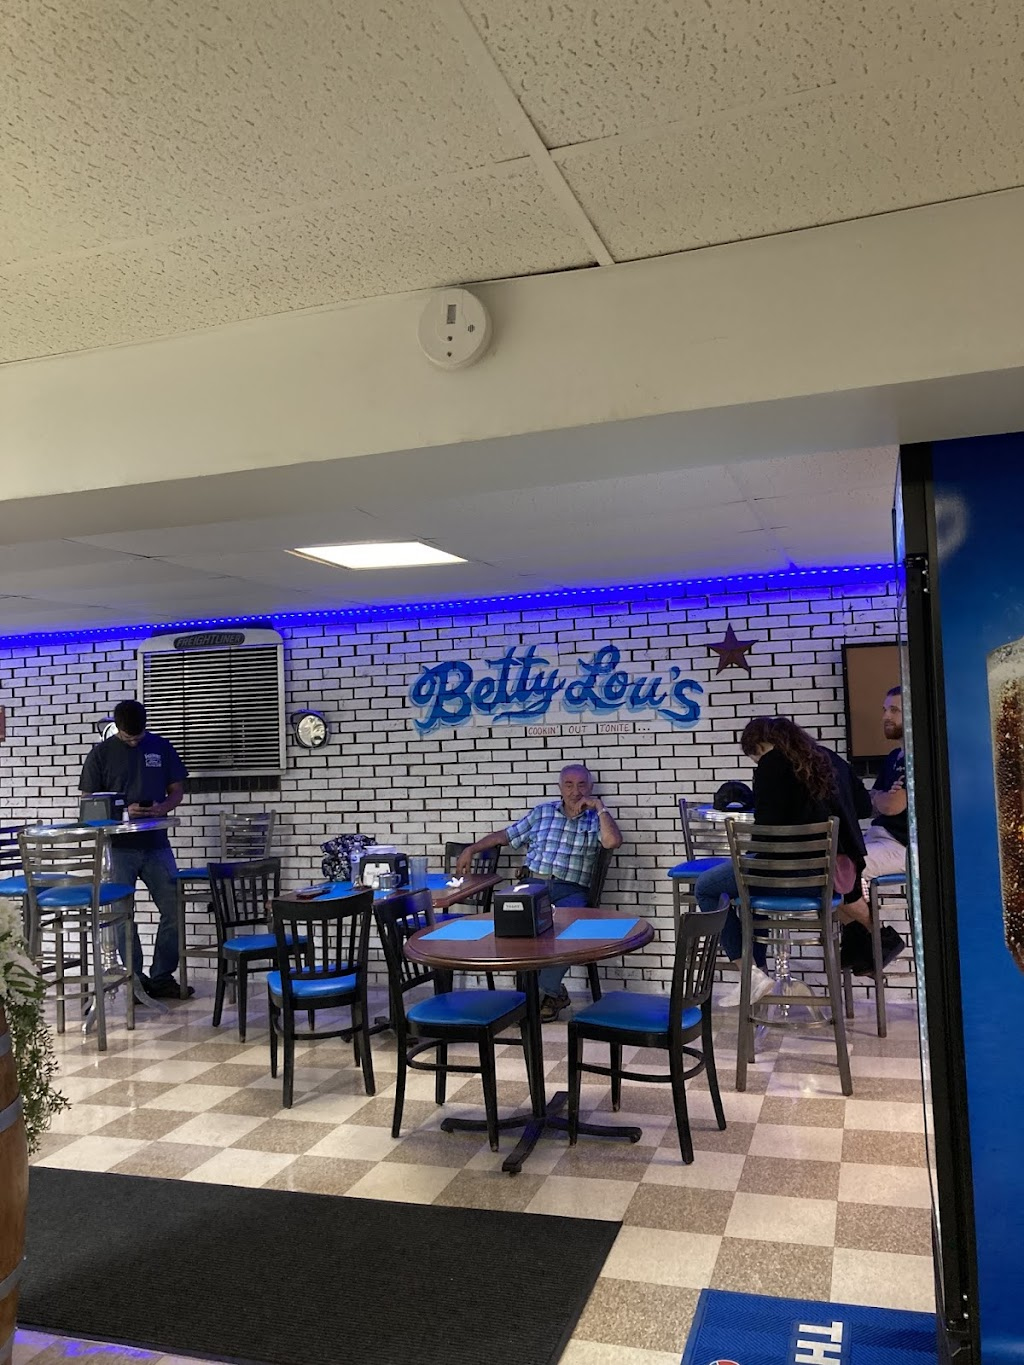 Betty Lou's   restaurant   225 Gilliespie Hollow Rd, Fayette City, PA 15438, USA   7242798020 OR +1 724-279-8020